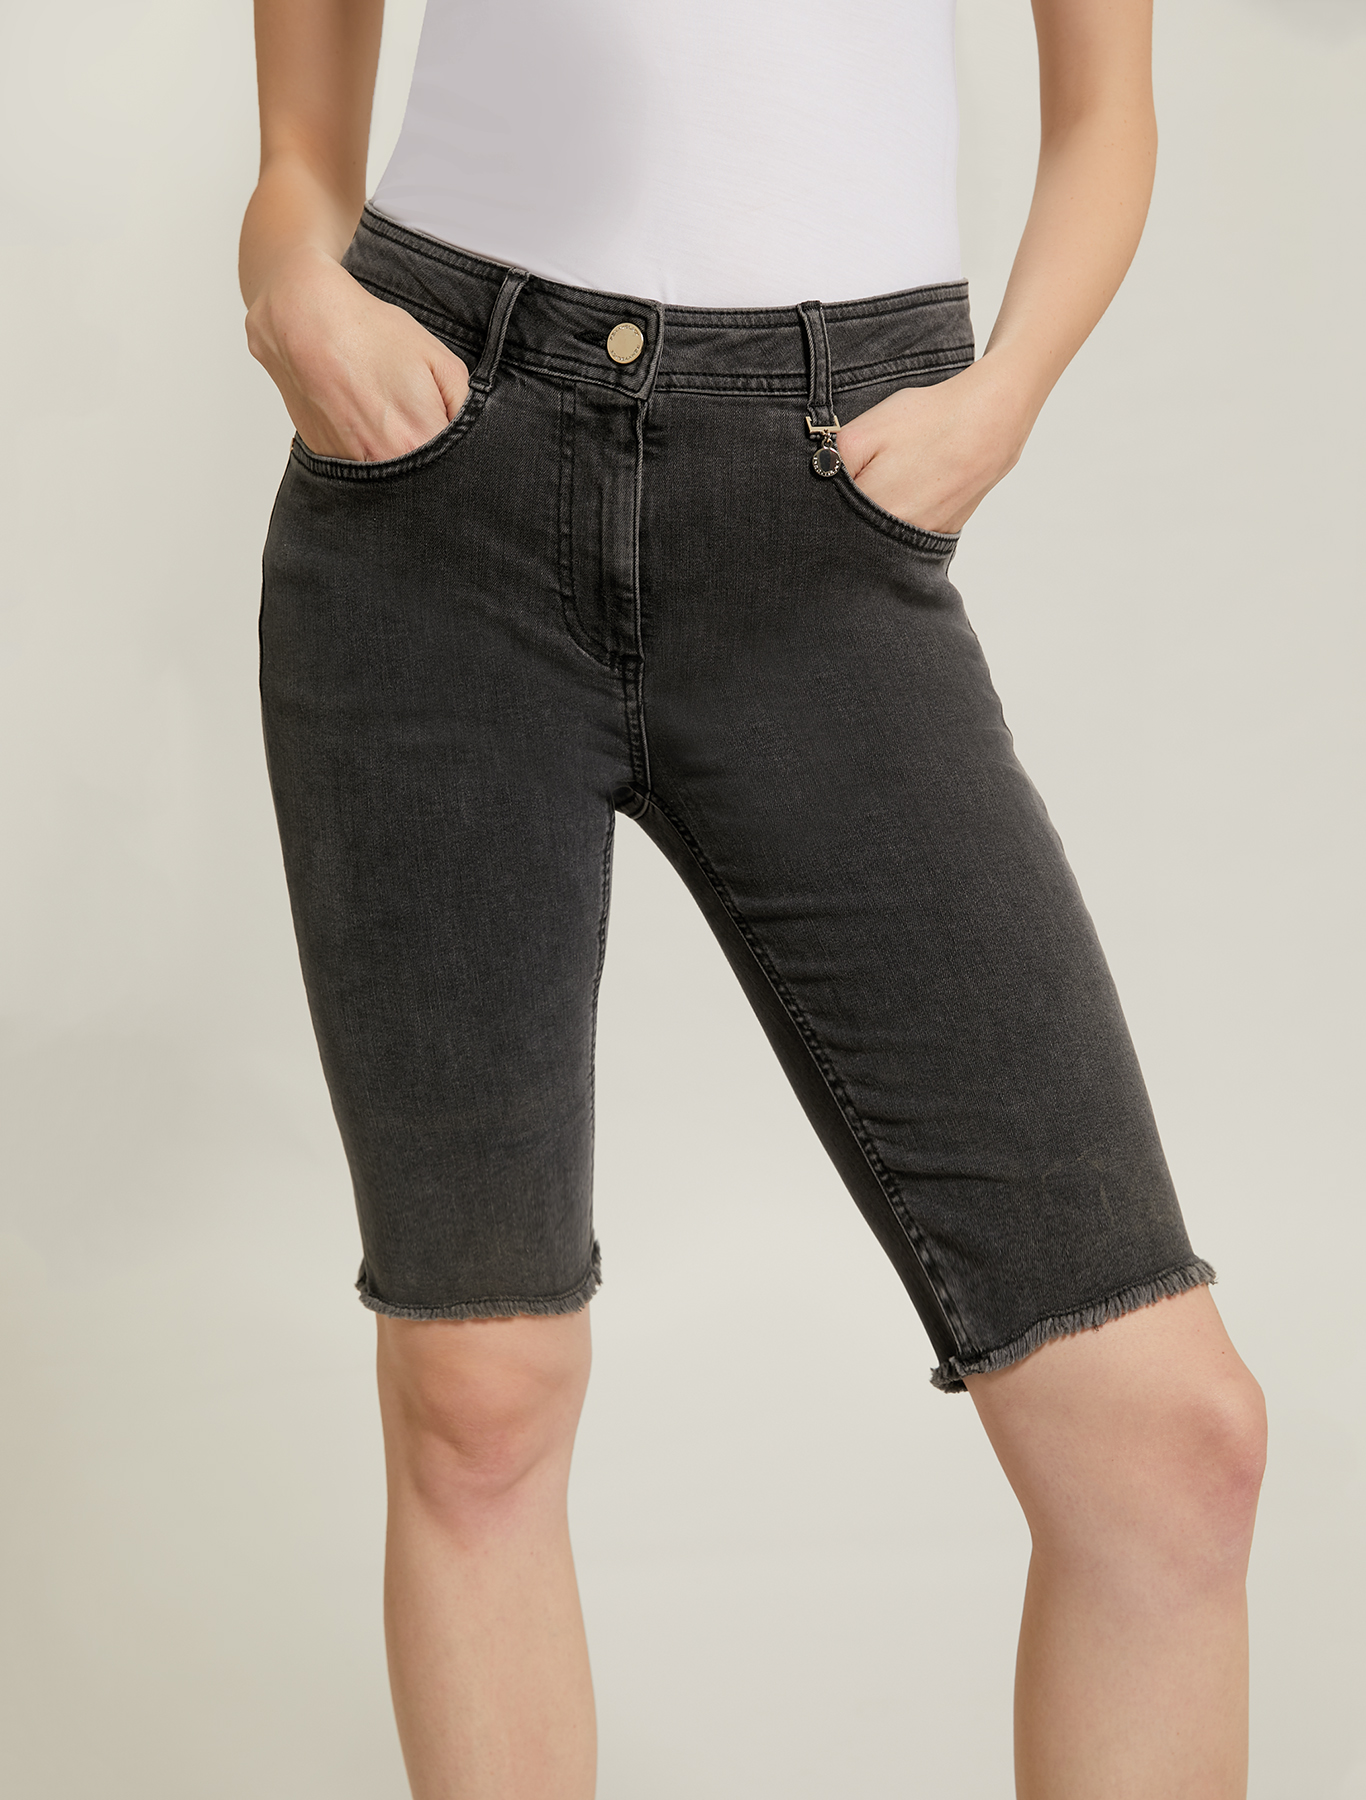 Write out Snack compile  Short skinny jeans, black - Pennyblack